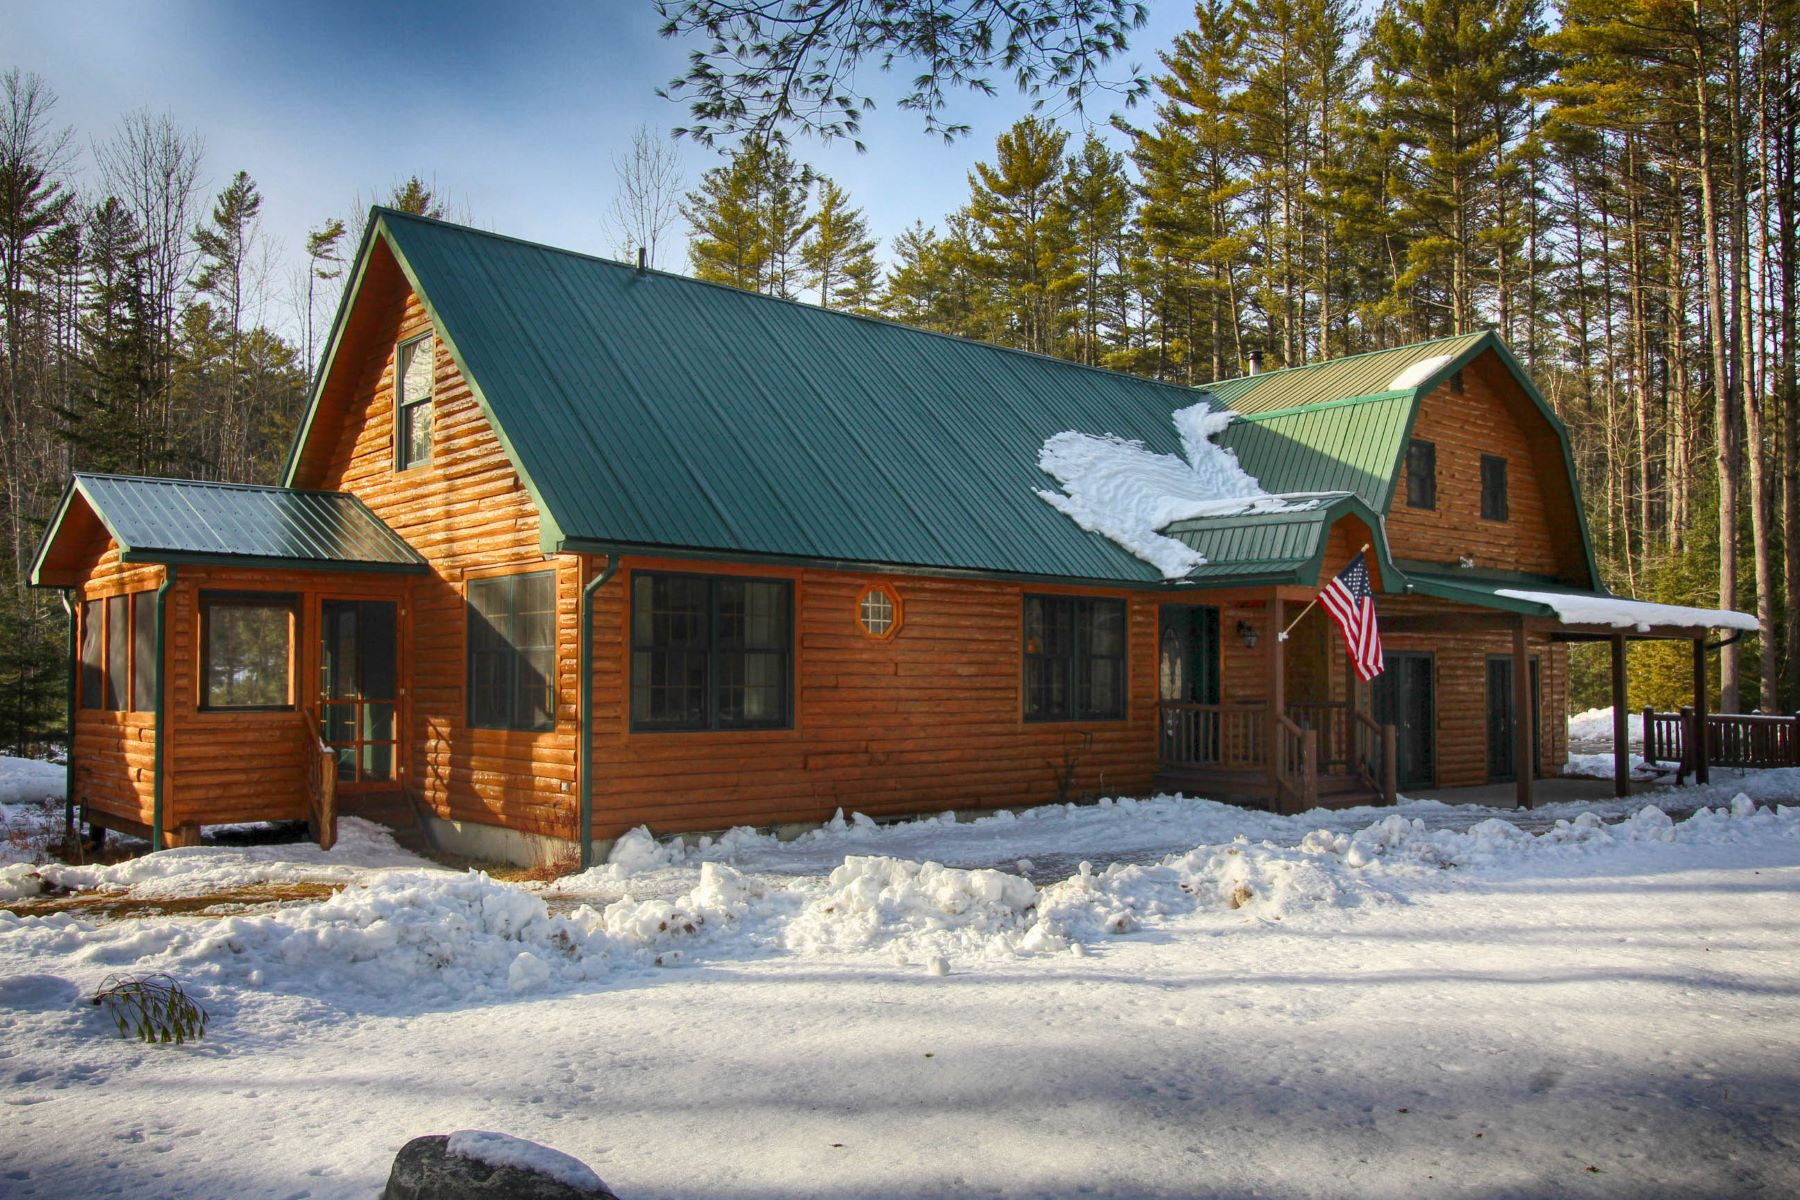 Single Family Homes for Sale at Private Cabin set in Adirondack NY 355 Shaw Hill Rd Adirondack, New York 12808 United States